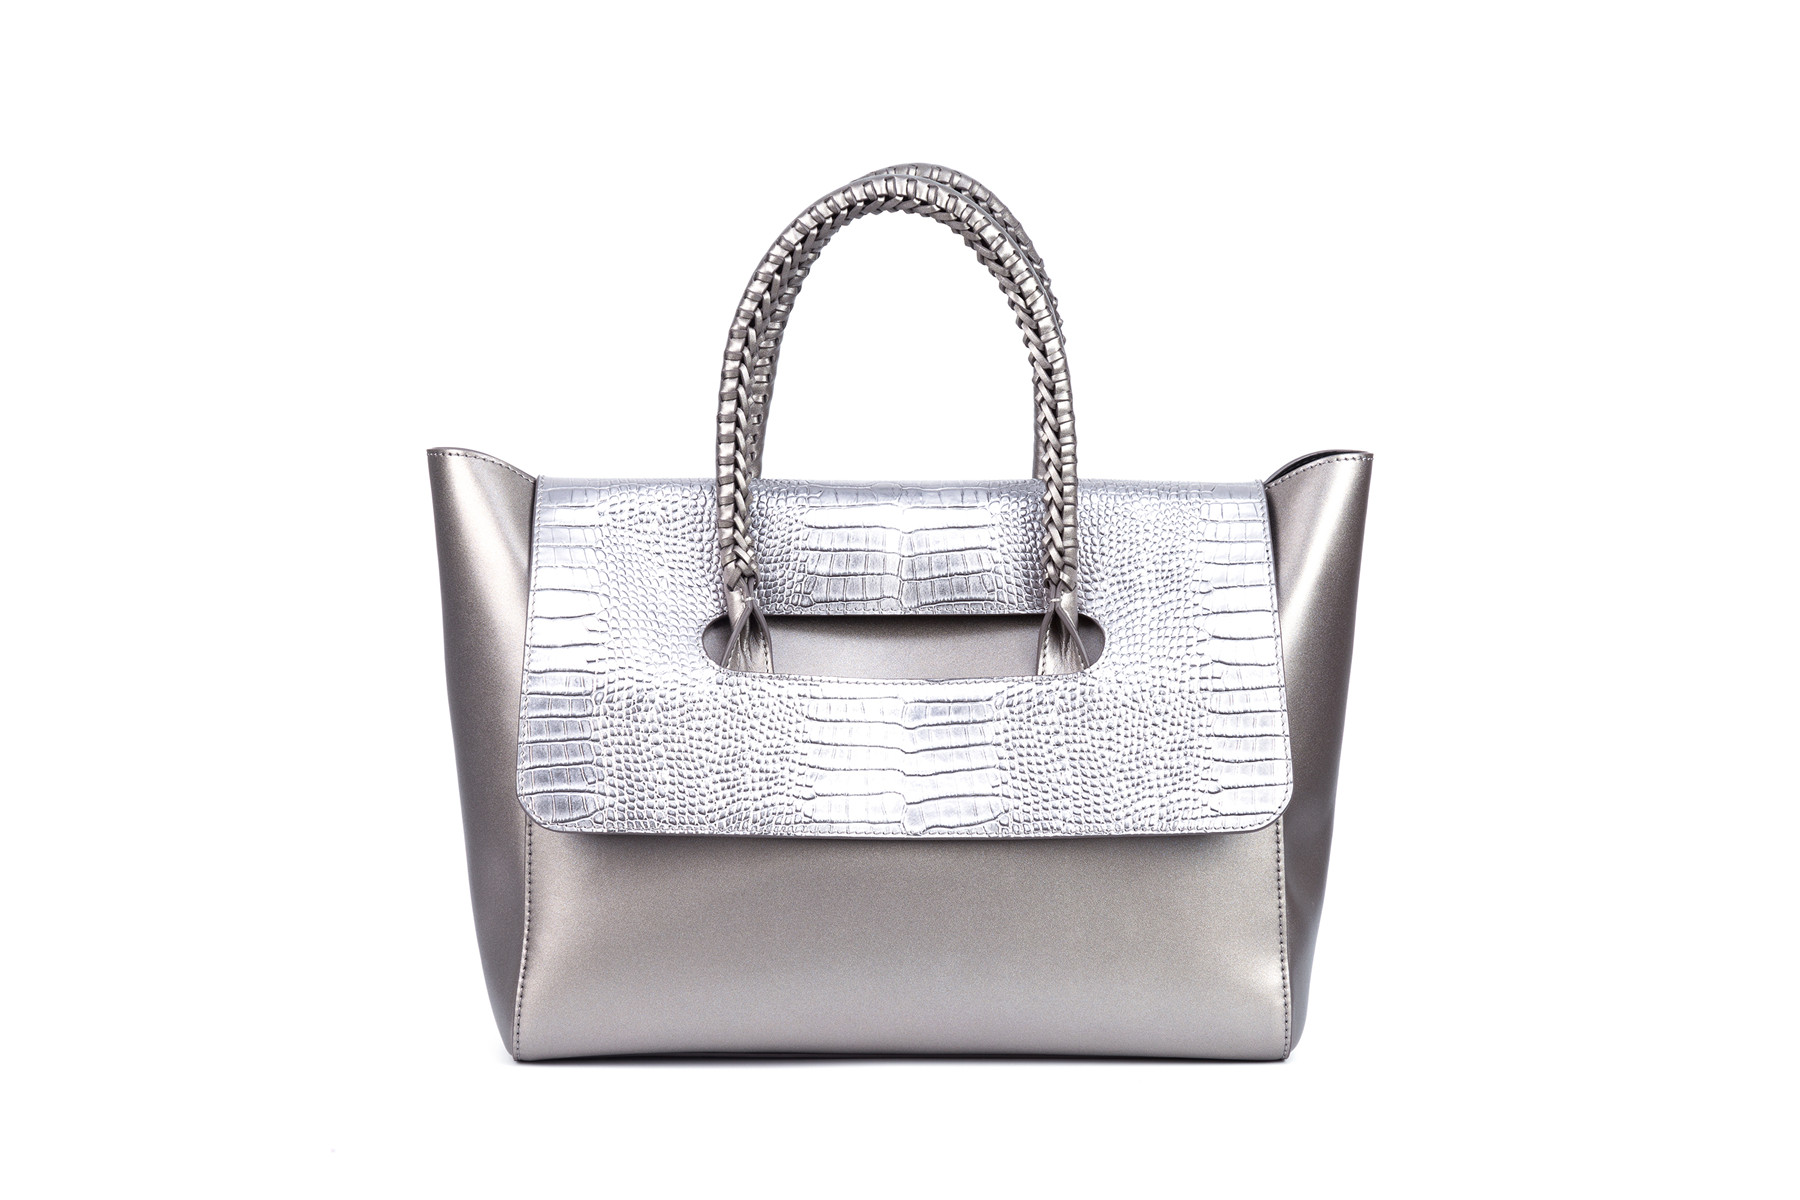 GF bags-Bulk Luxury Handbags Manufacturer, Affordable Handbags | Gf Bags